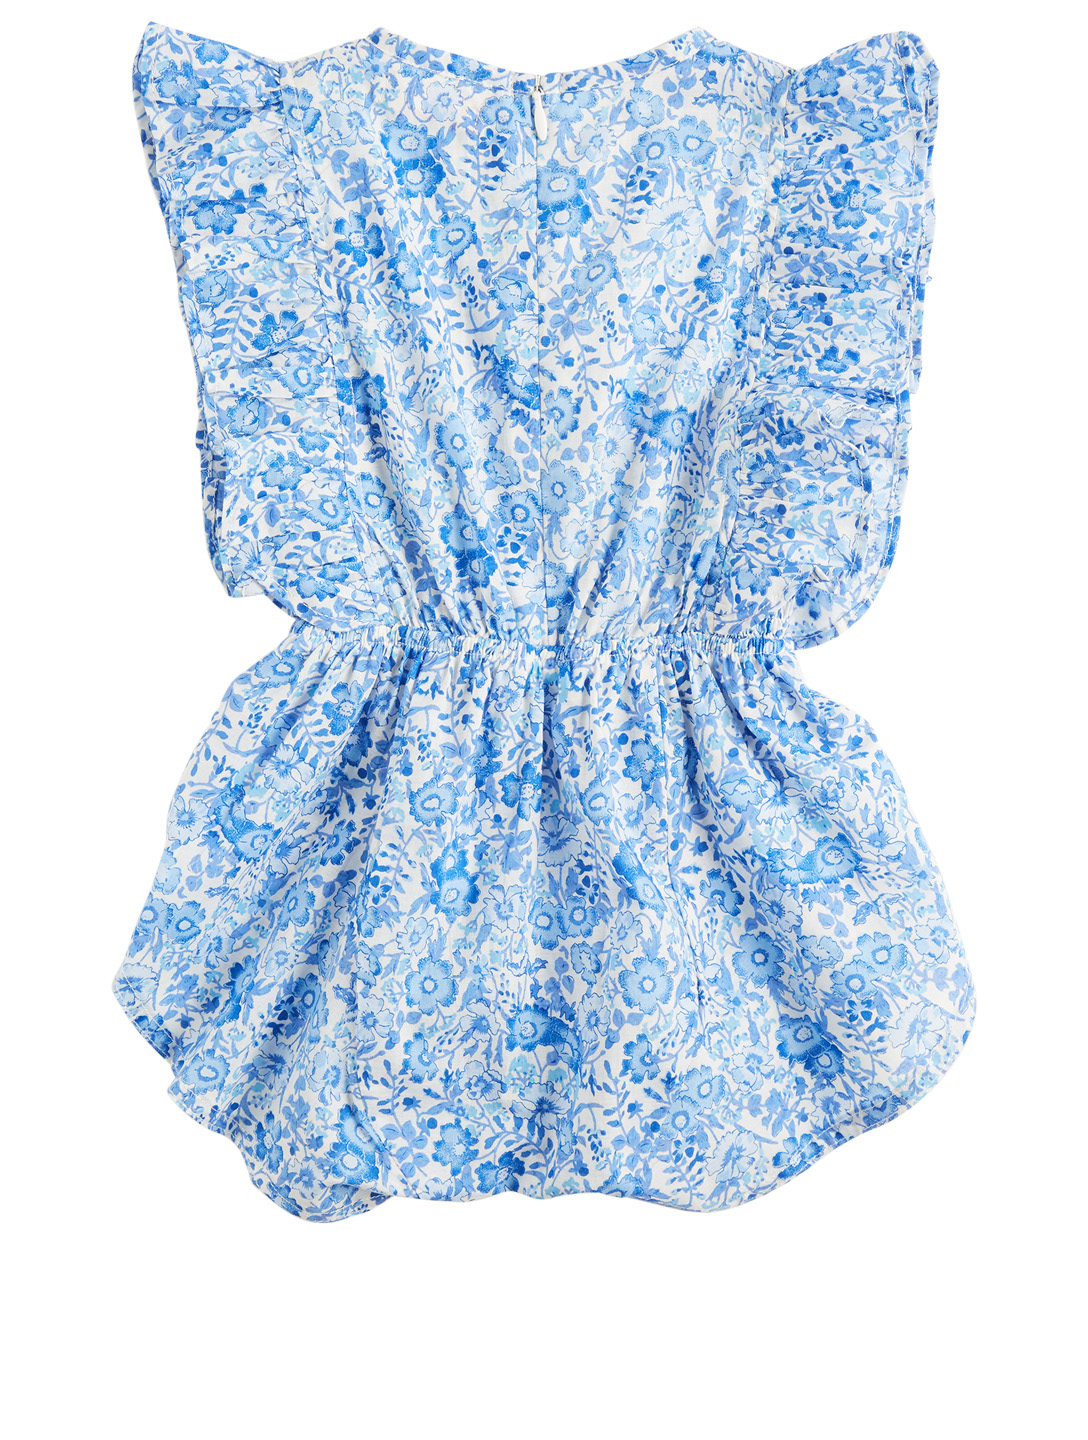 COCO & GINGER Delphine Baby Sunsuit Romper In Indian Flower Print H Project Multi